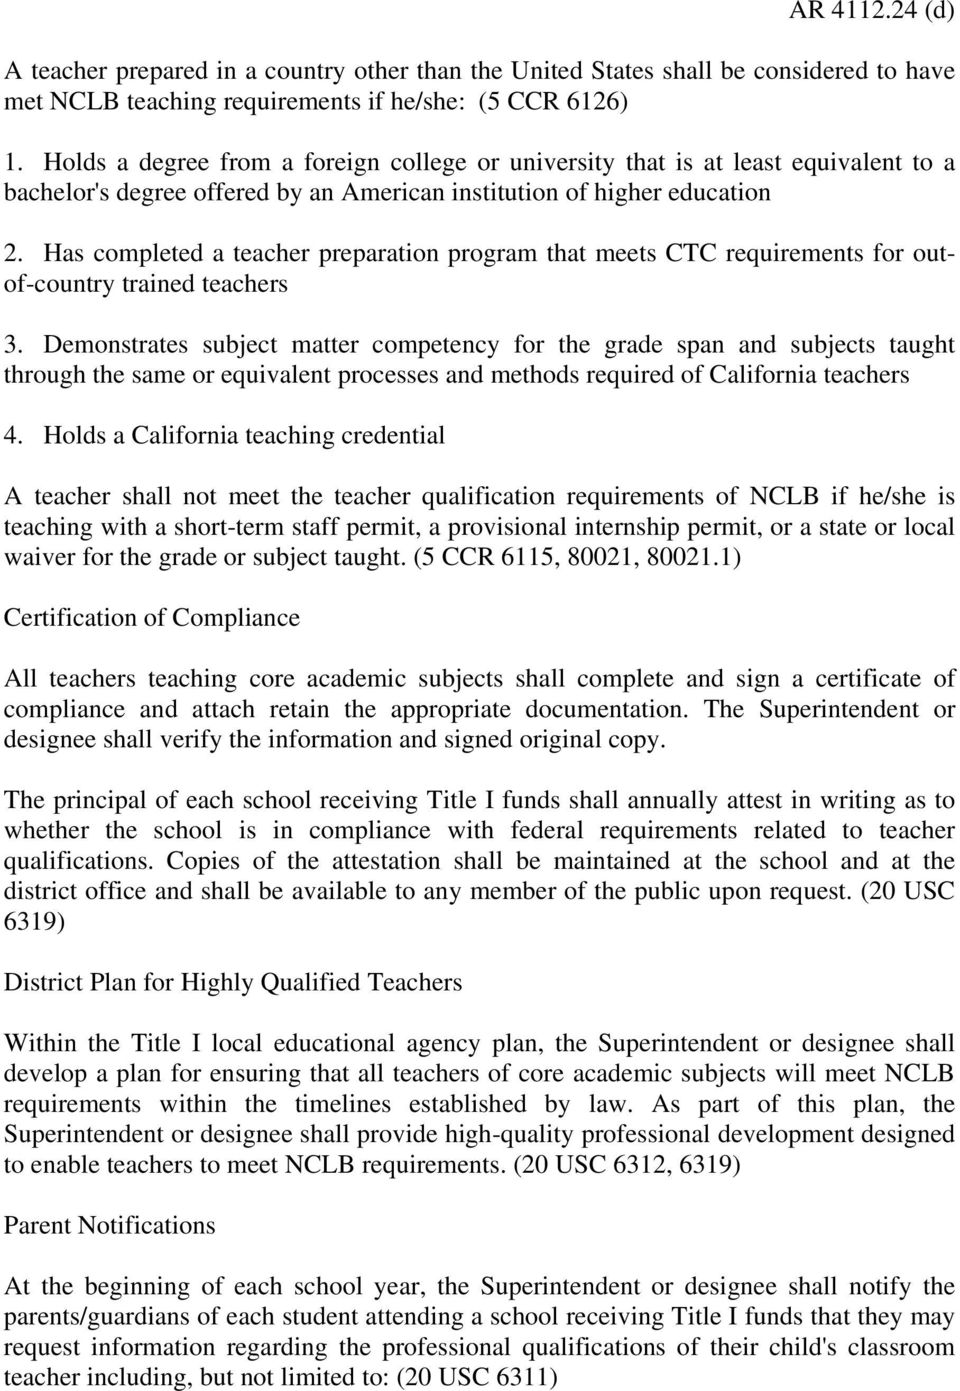 Personnel Teacher Qualifications Under The No Child Left Behind Act